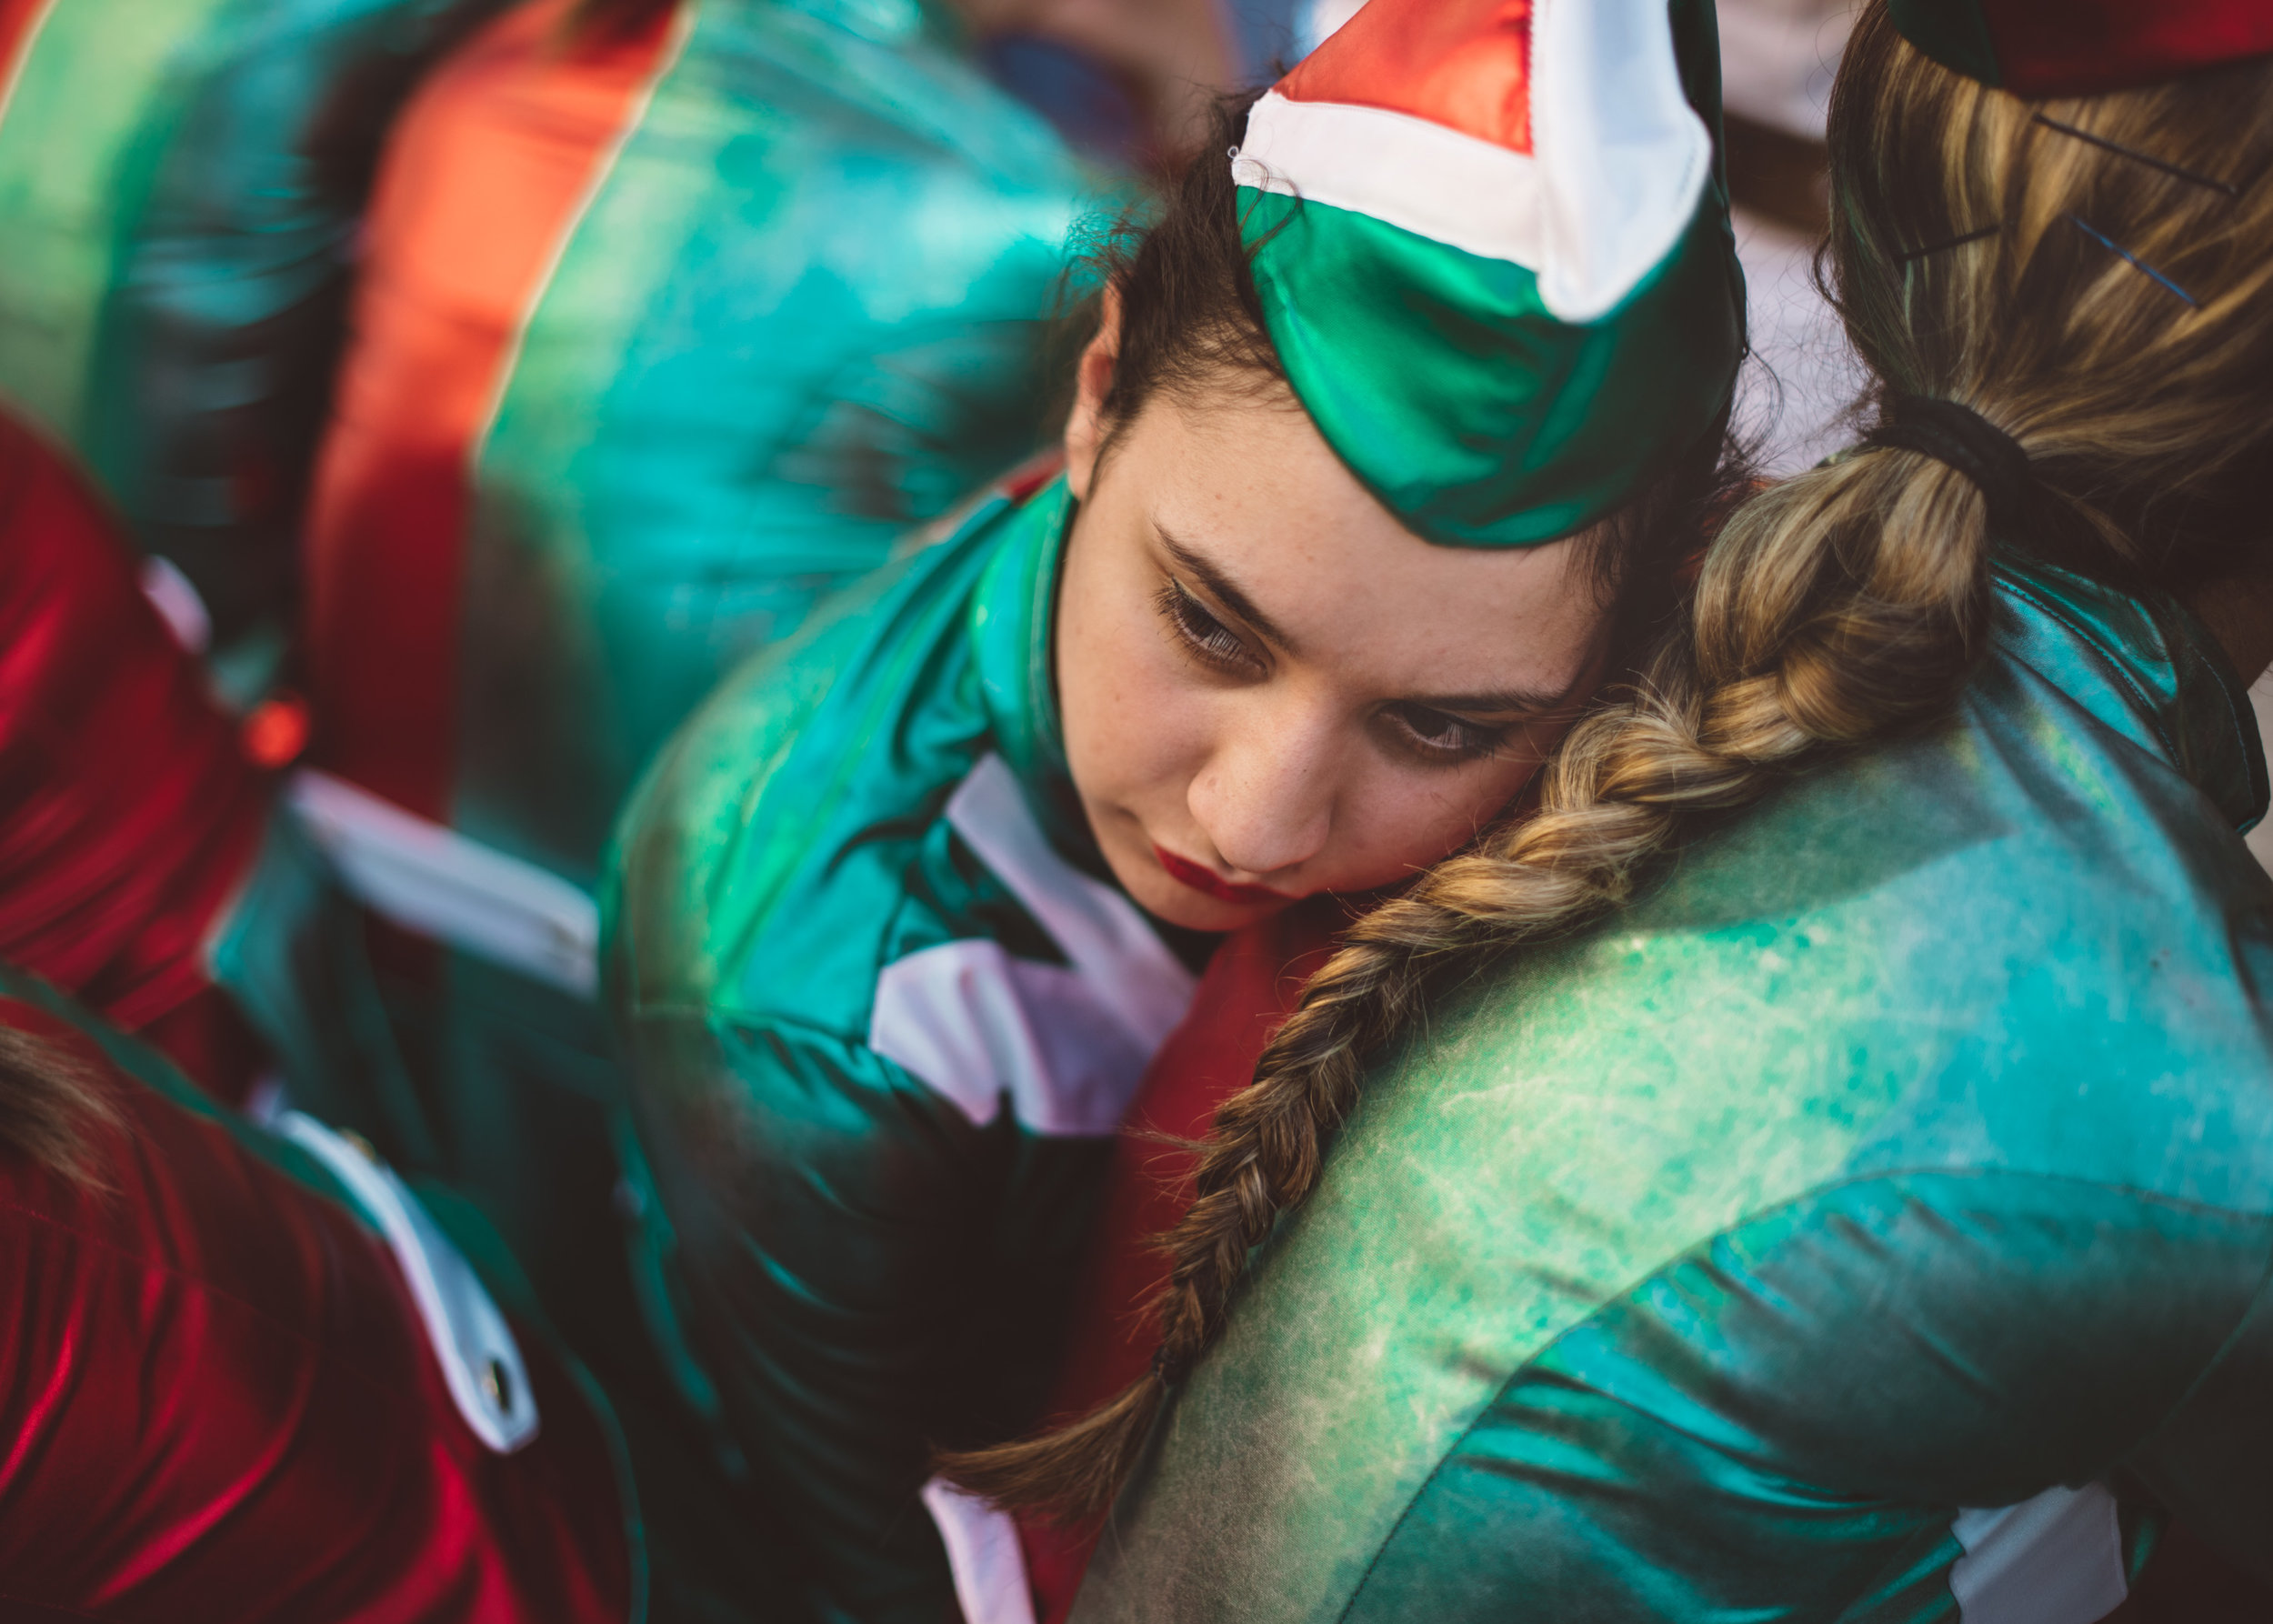 Maria rests her head on her best friend's Teresa back, during a long and exhausting day performing in in small towns around Naples.